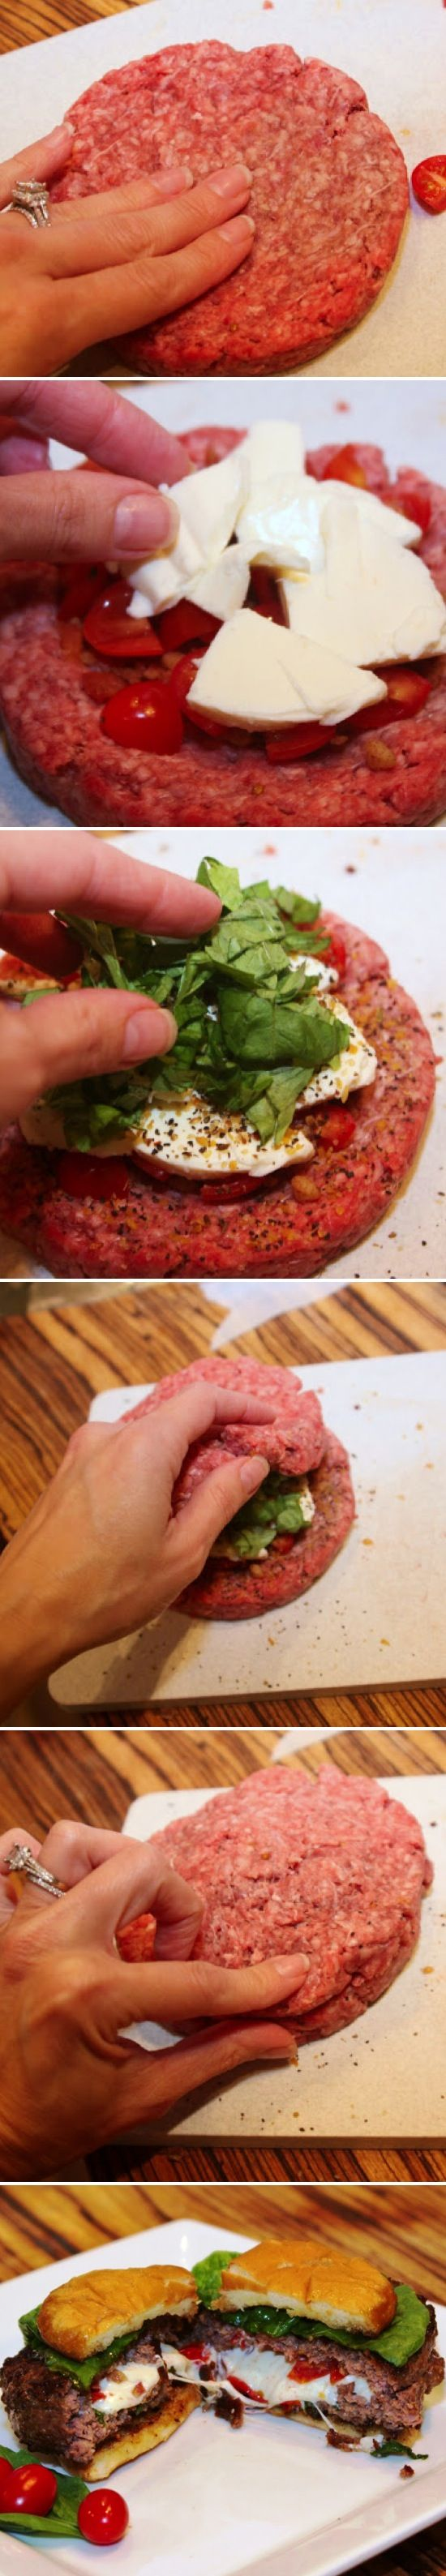 Caprese Stuffed Burgers ~ This is an Italian burger at it's best! Link to recipe on page... some great tips on how to make this burger exceptional, including how to make sure it cooks evenly